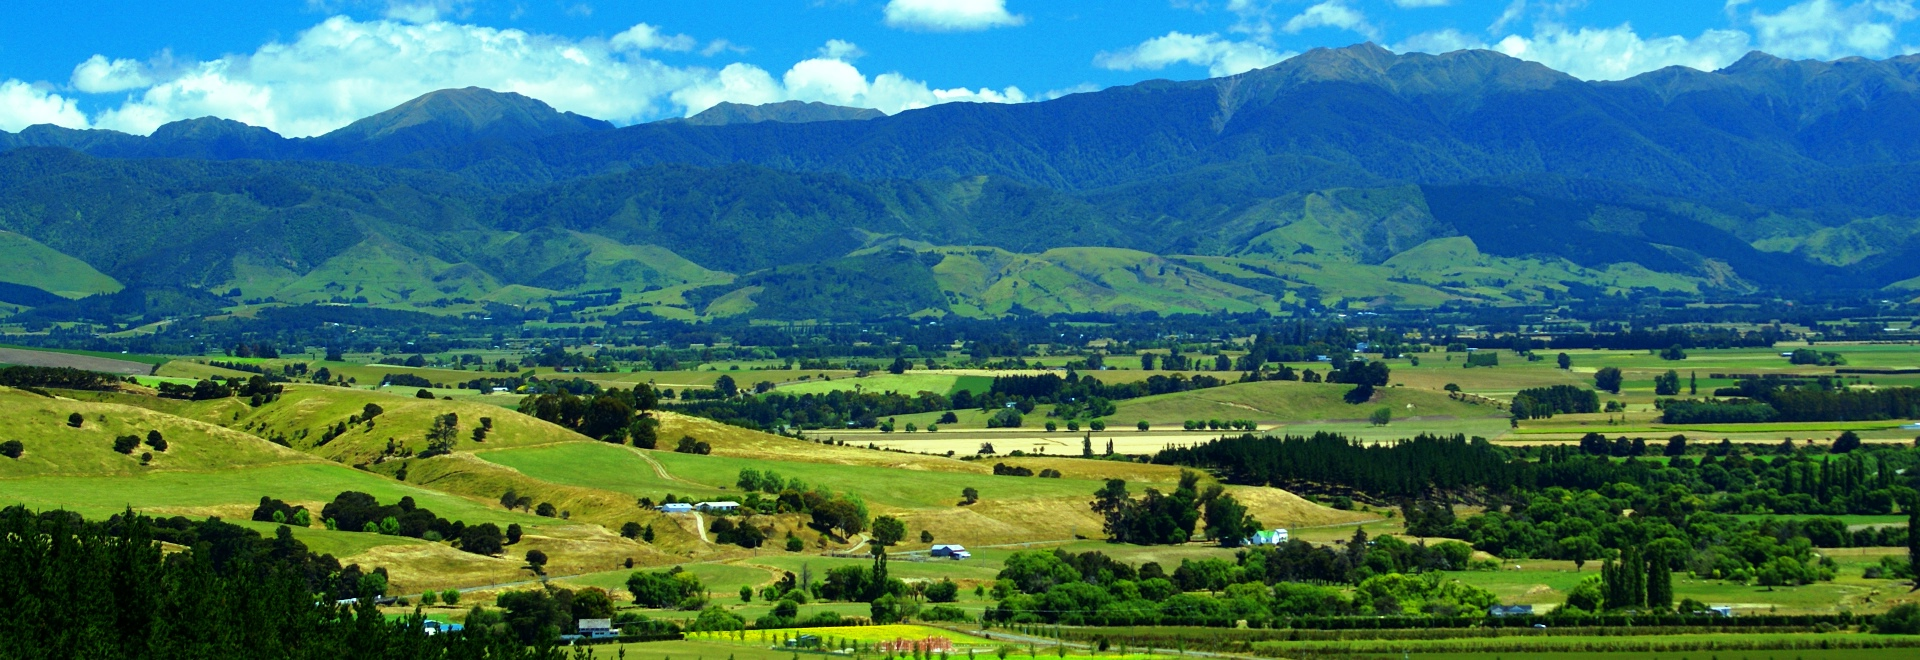 Twilight Travel & Tours. Wairarapa Coach Tour